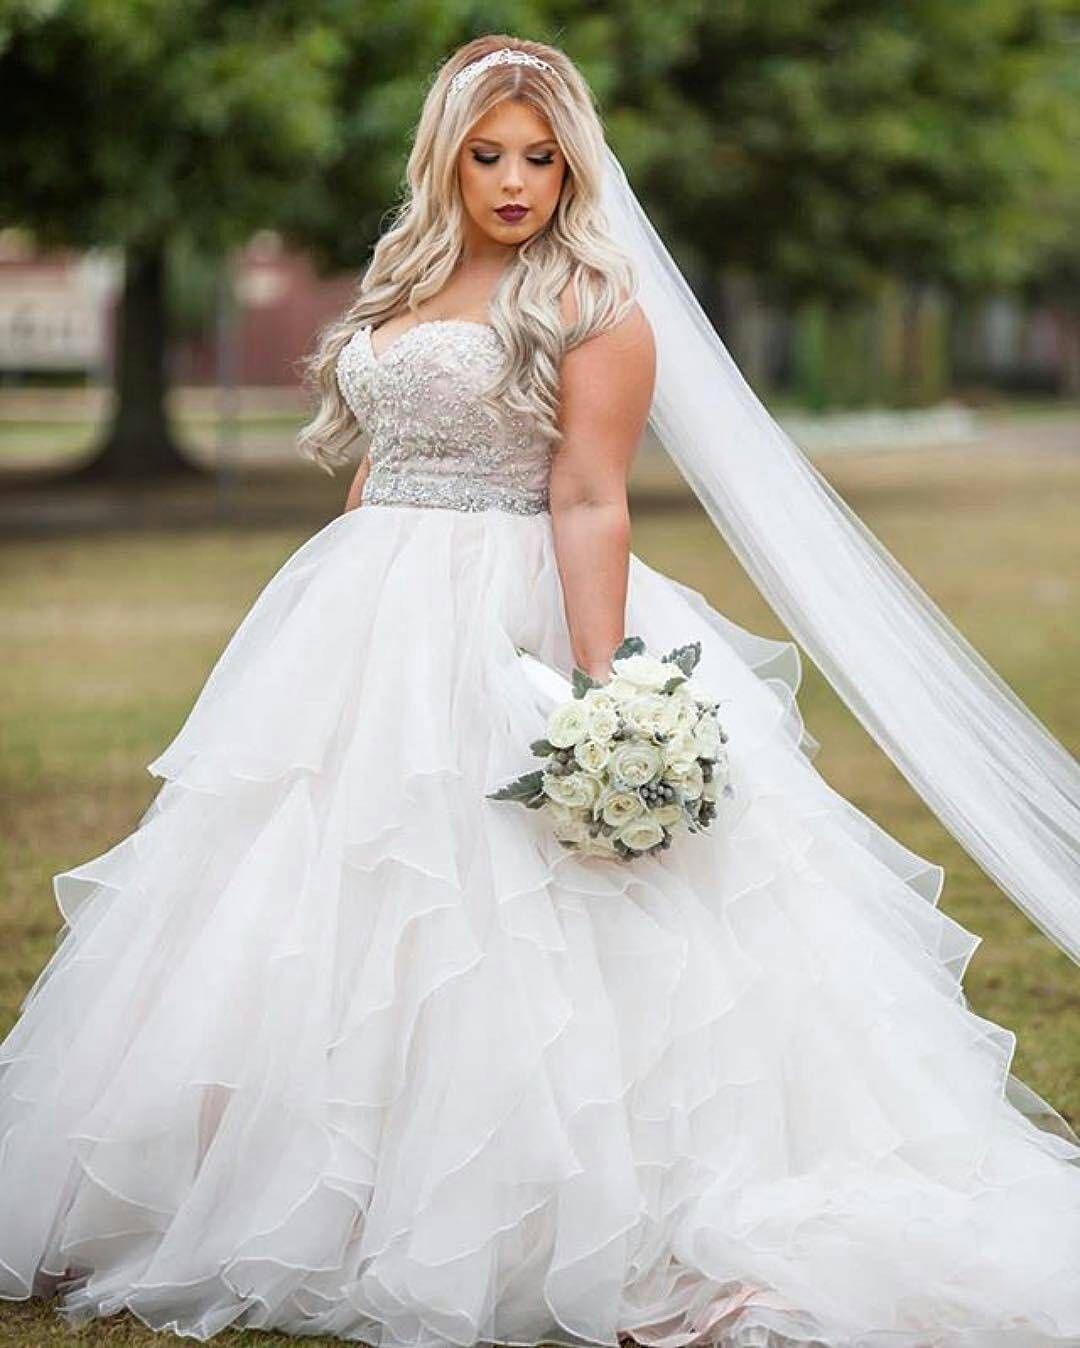 Strapless empire waist plus size wedding gowns from darius cordell  Plus Size Wedding Dresses